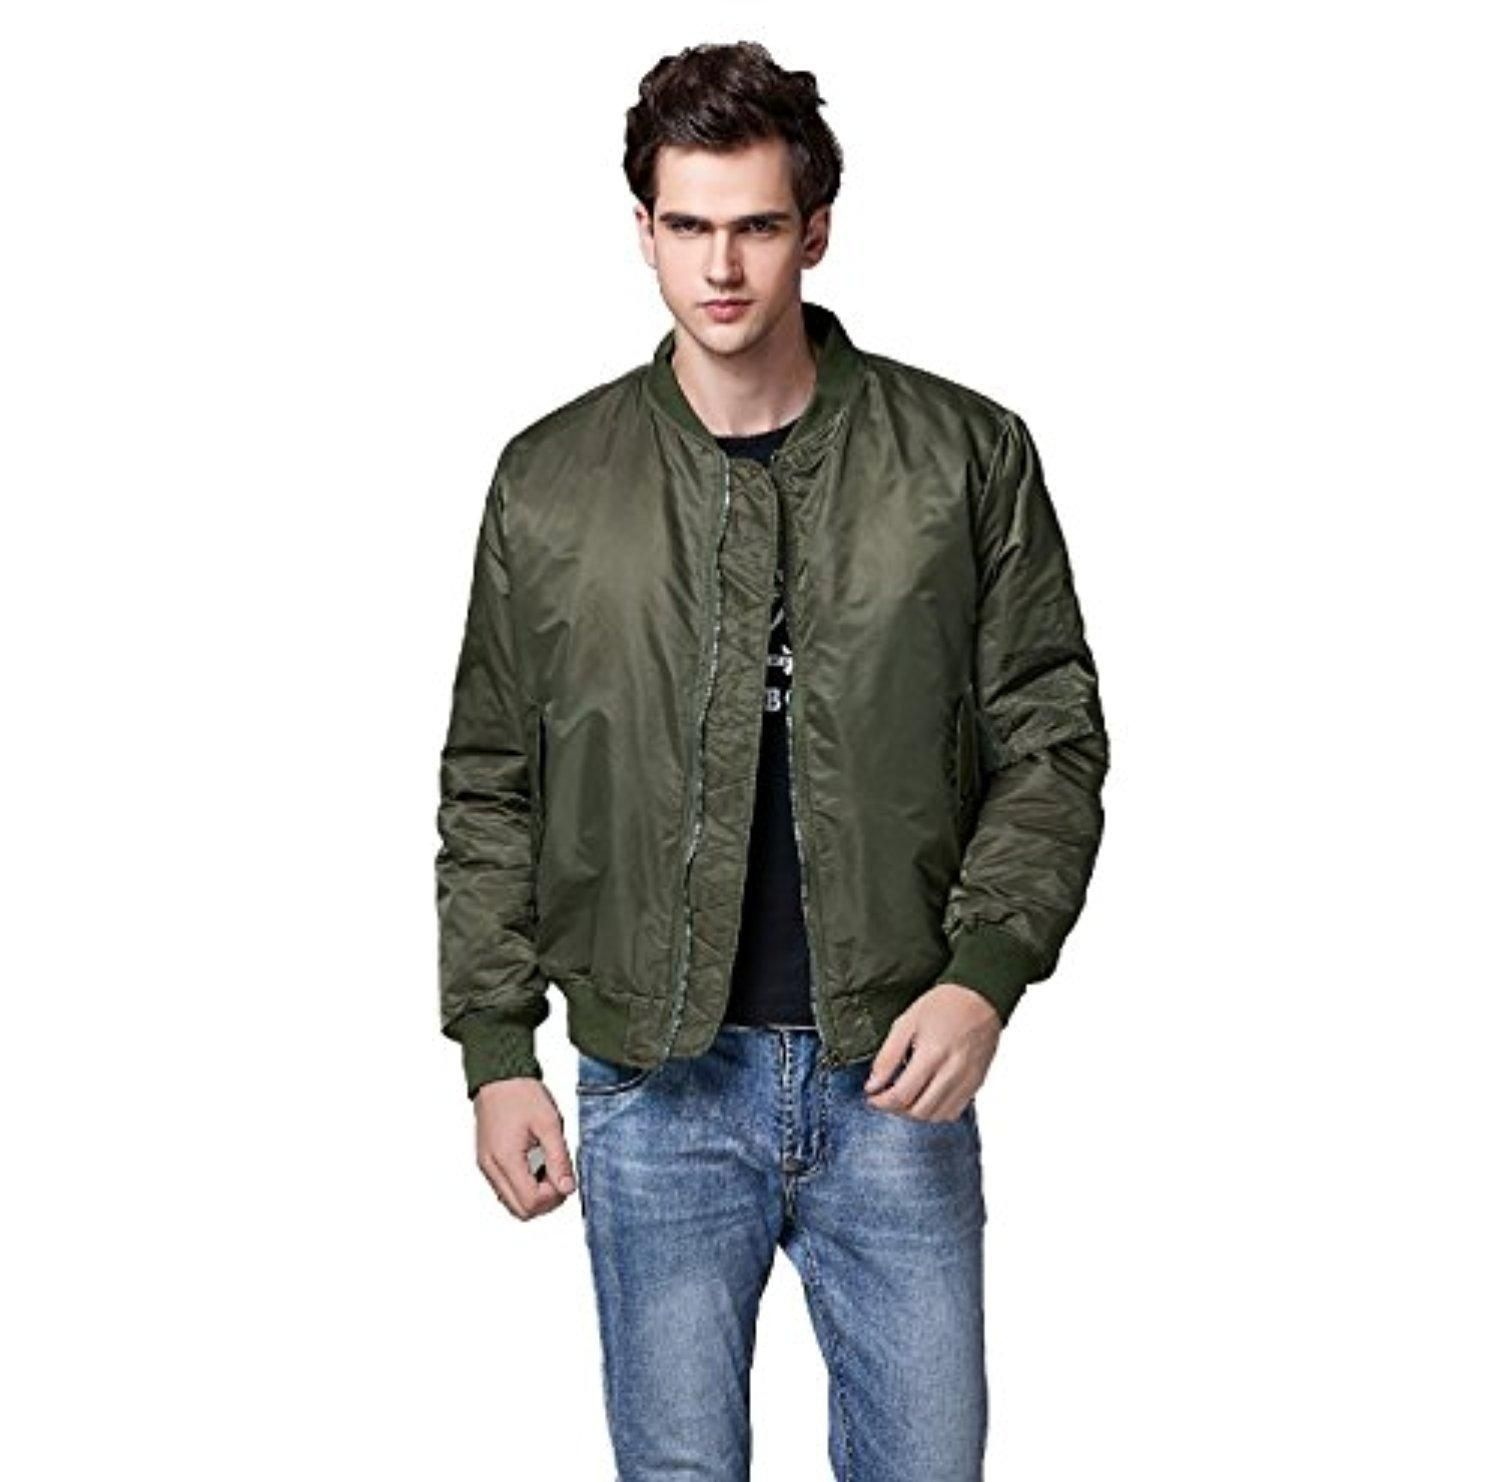 Neo Wows Men S Ma 1 Slim Fit Bomber Flight Jacket Thick Brought To You By Avarsha Com Fitted Bomber Jacket Flight Jacket Mens Bomber [ 1482 x 1500 Pixel ]